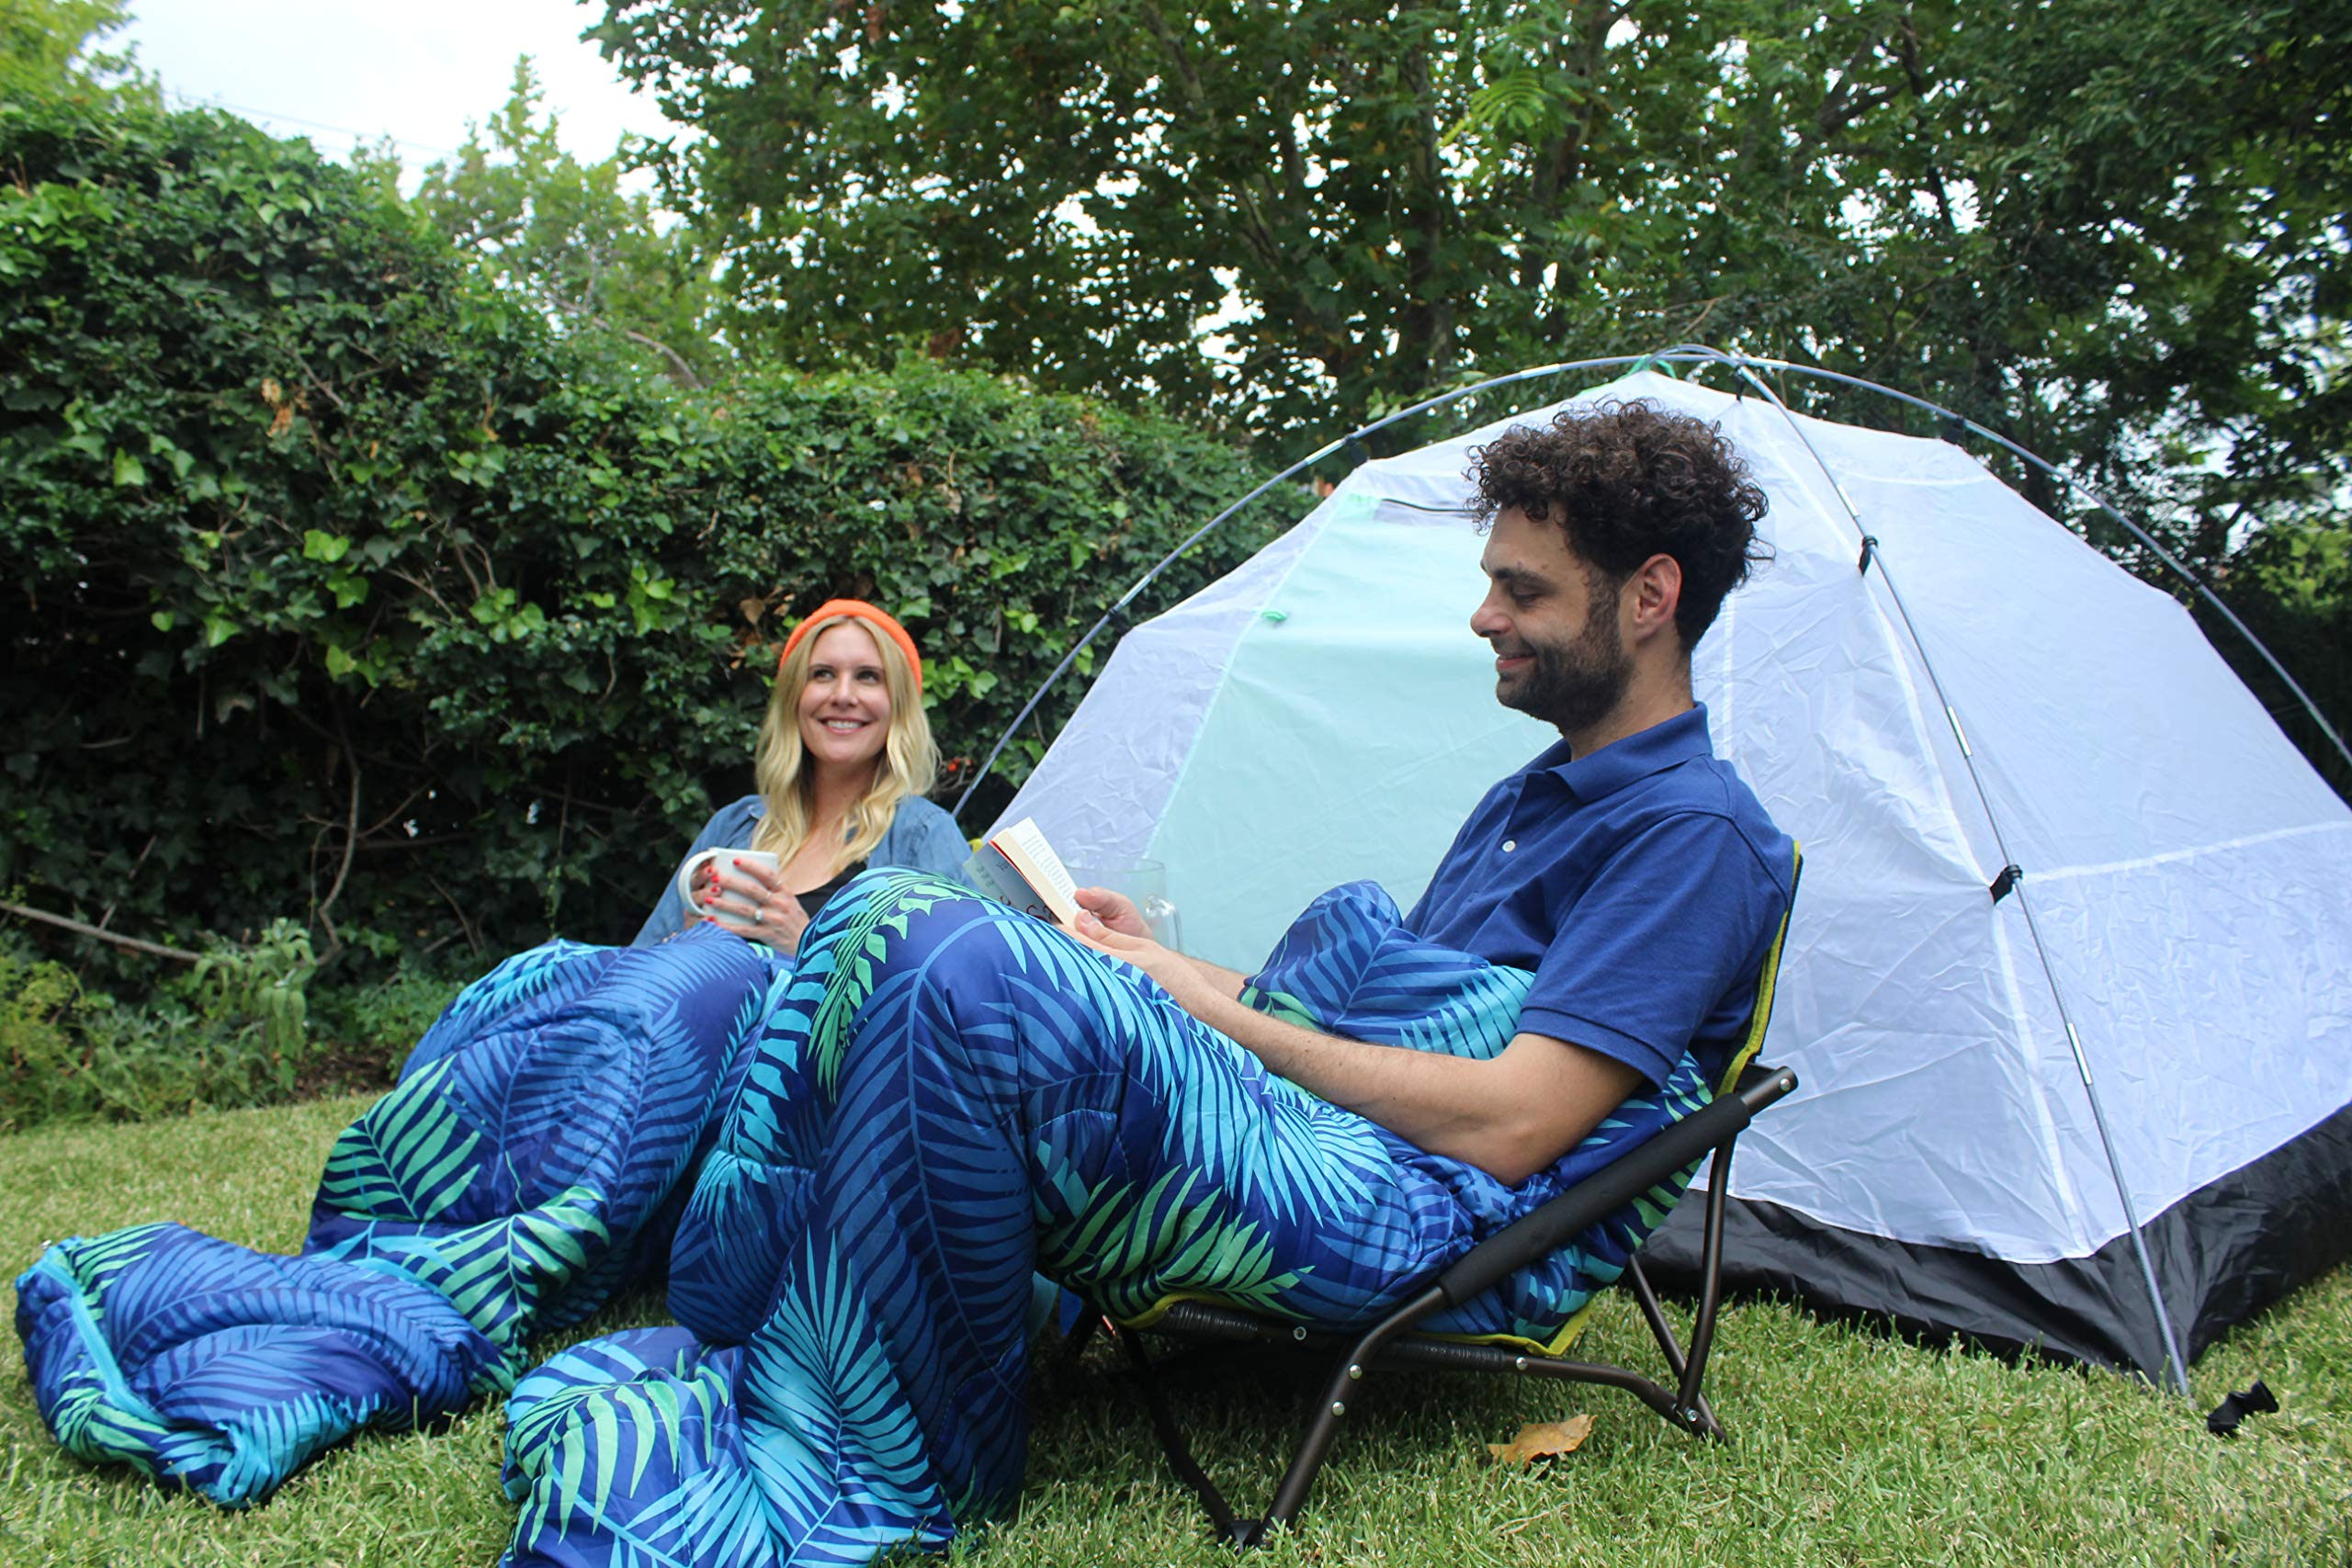 Chillbo Double Sleeping Bag for Adults Queen Sleeping Bag for Backpacking, Camping, Hiking & Music Festivals Cool Patterns Queen Size XL 2 Person Sleeping Bags for Adults 9